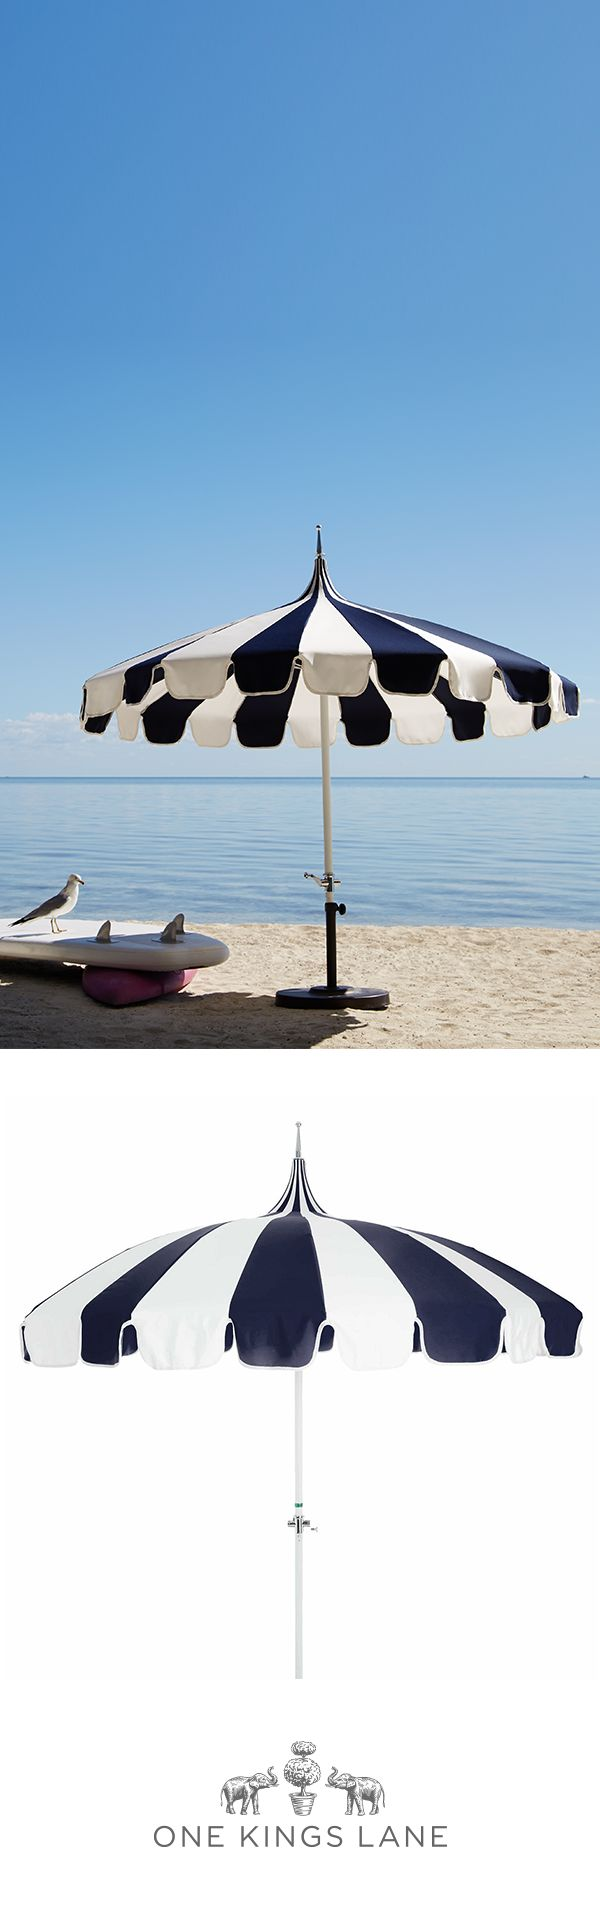 It's time to get outside! Whether you're entertaining or just lounging outdoors, catch some shade in style with this patio umbrella. Find the perfect outdoor umbrella on One Kings Lane and make your outdoor space (big or small!) one you love.